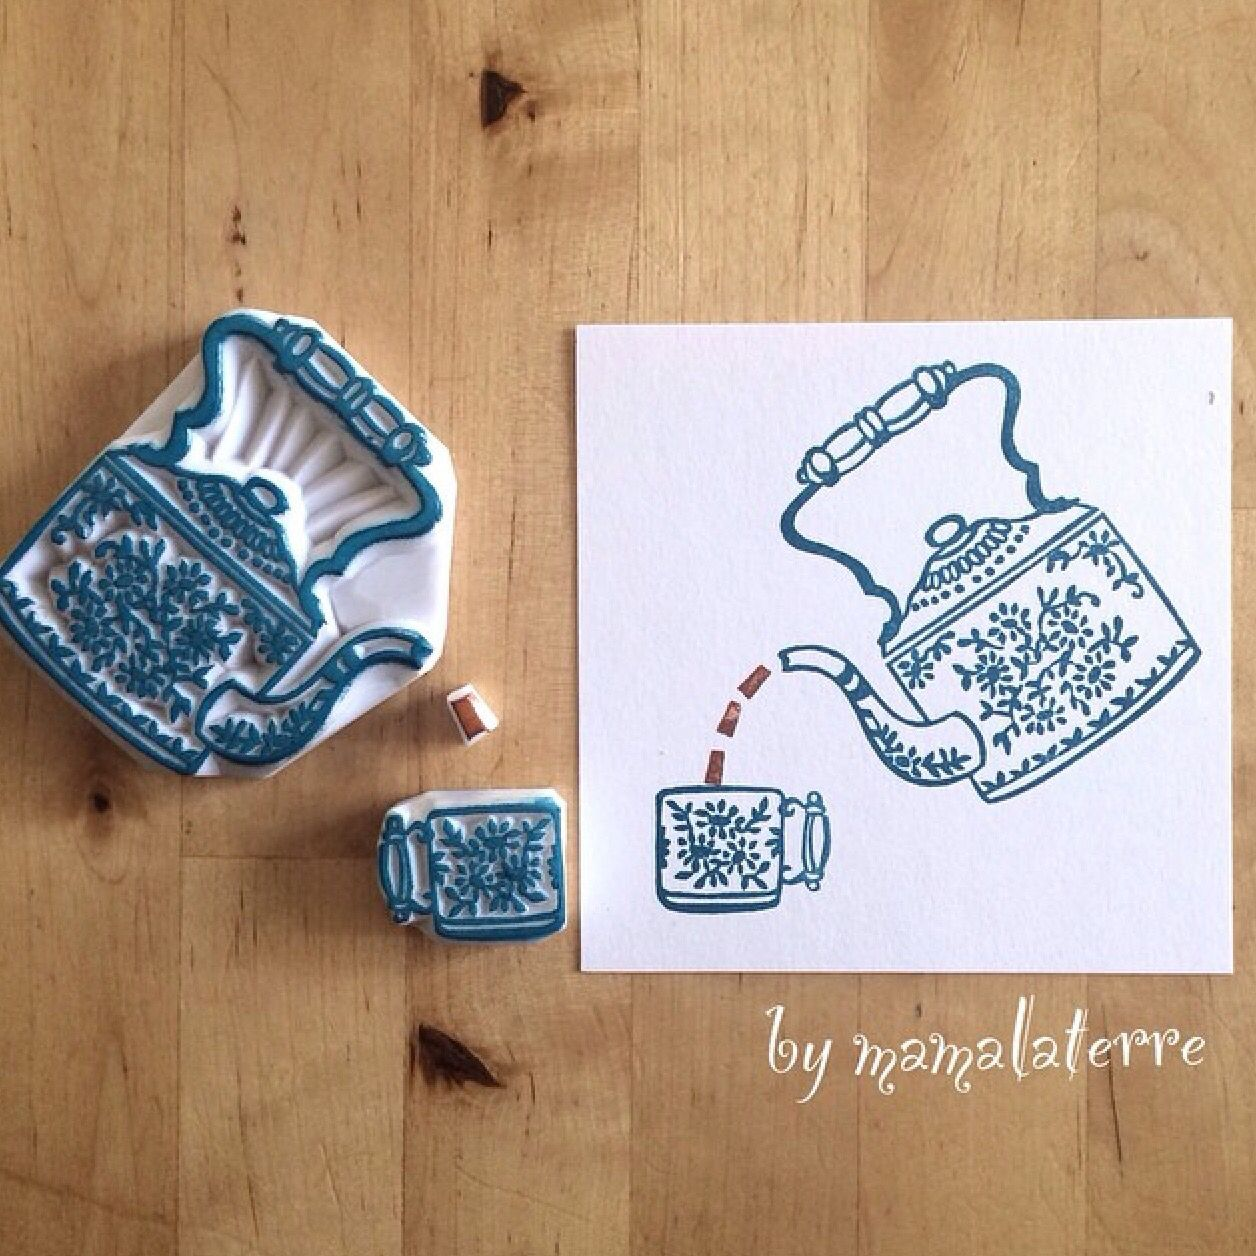 Stempel Herstellen Rubberstamp Via Instagram Mamalaterre For More Rubber Stamps